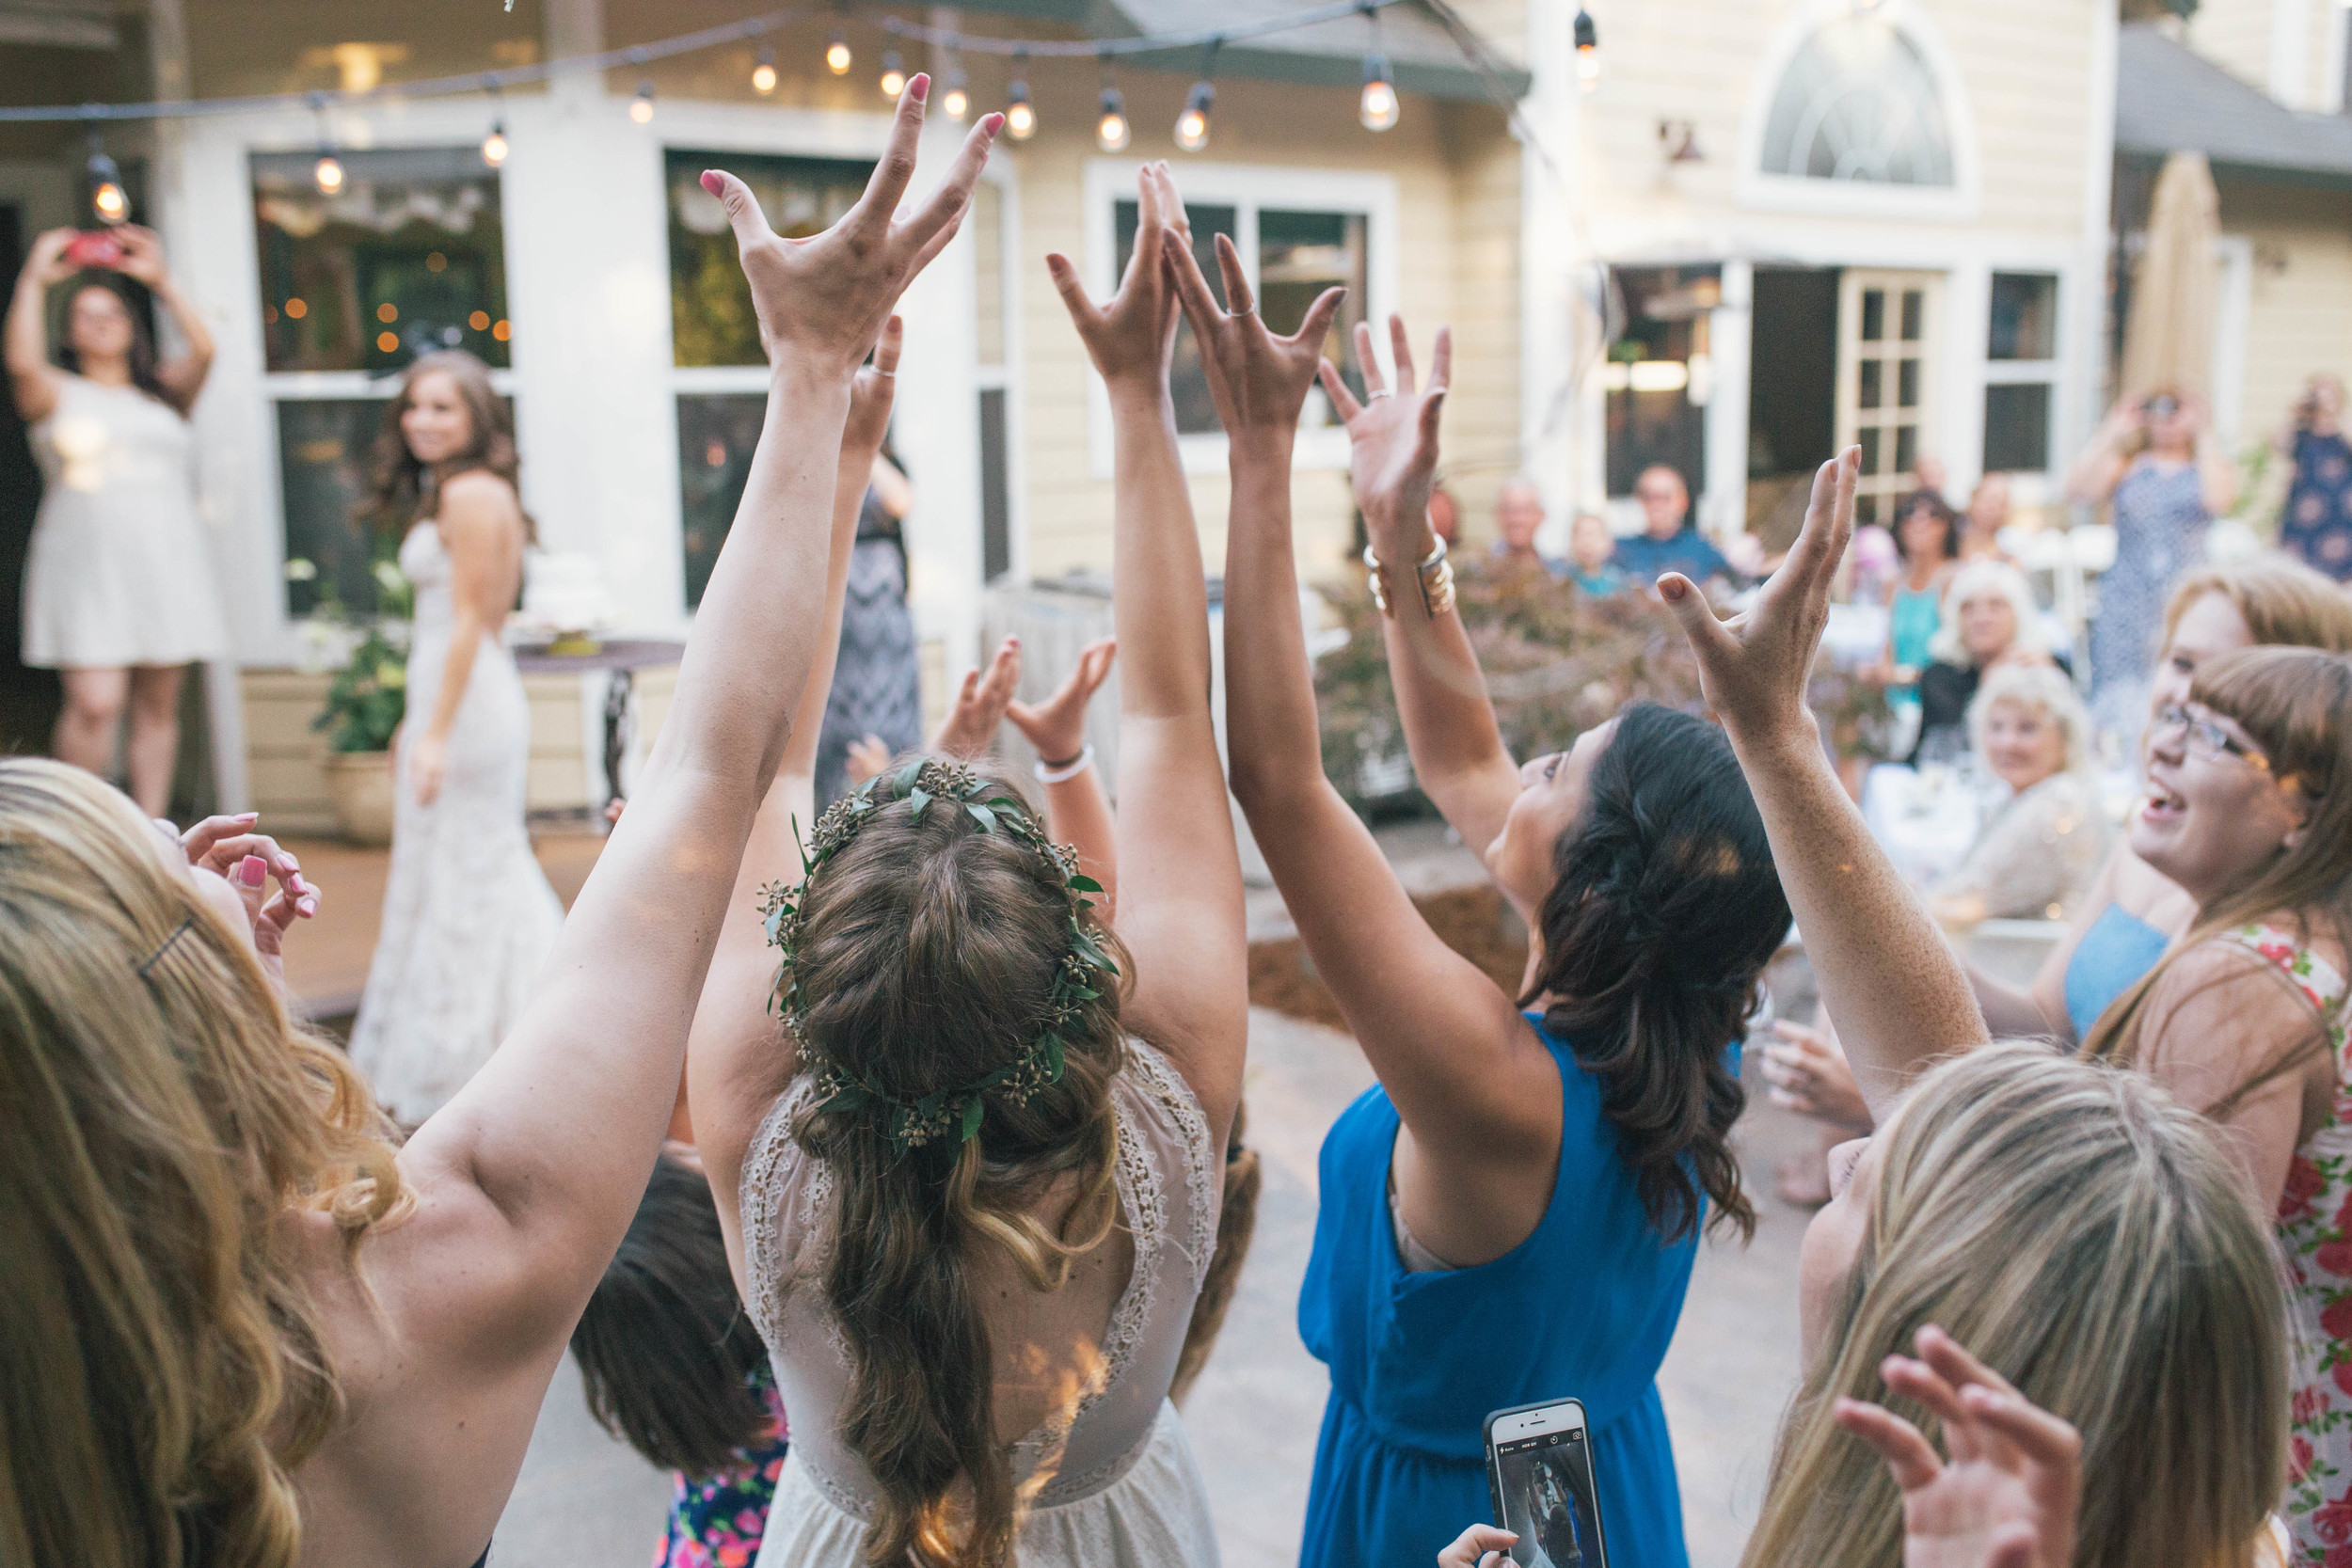 sonoma-county-wedding-photographer-backyard-bouquet-toss-bride